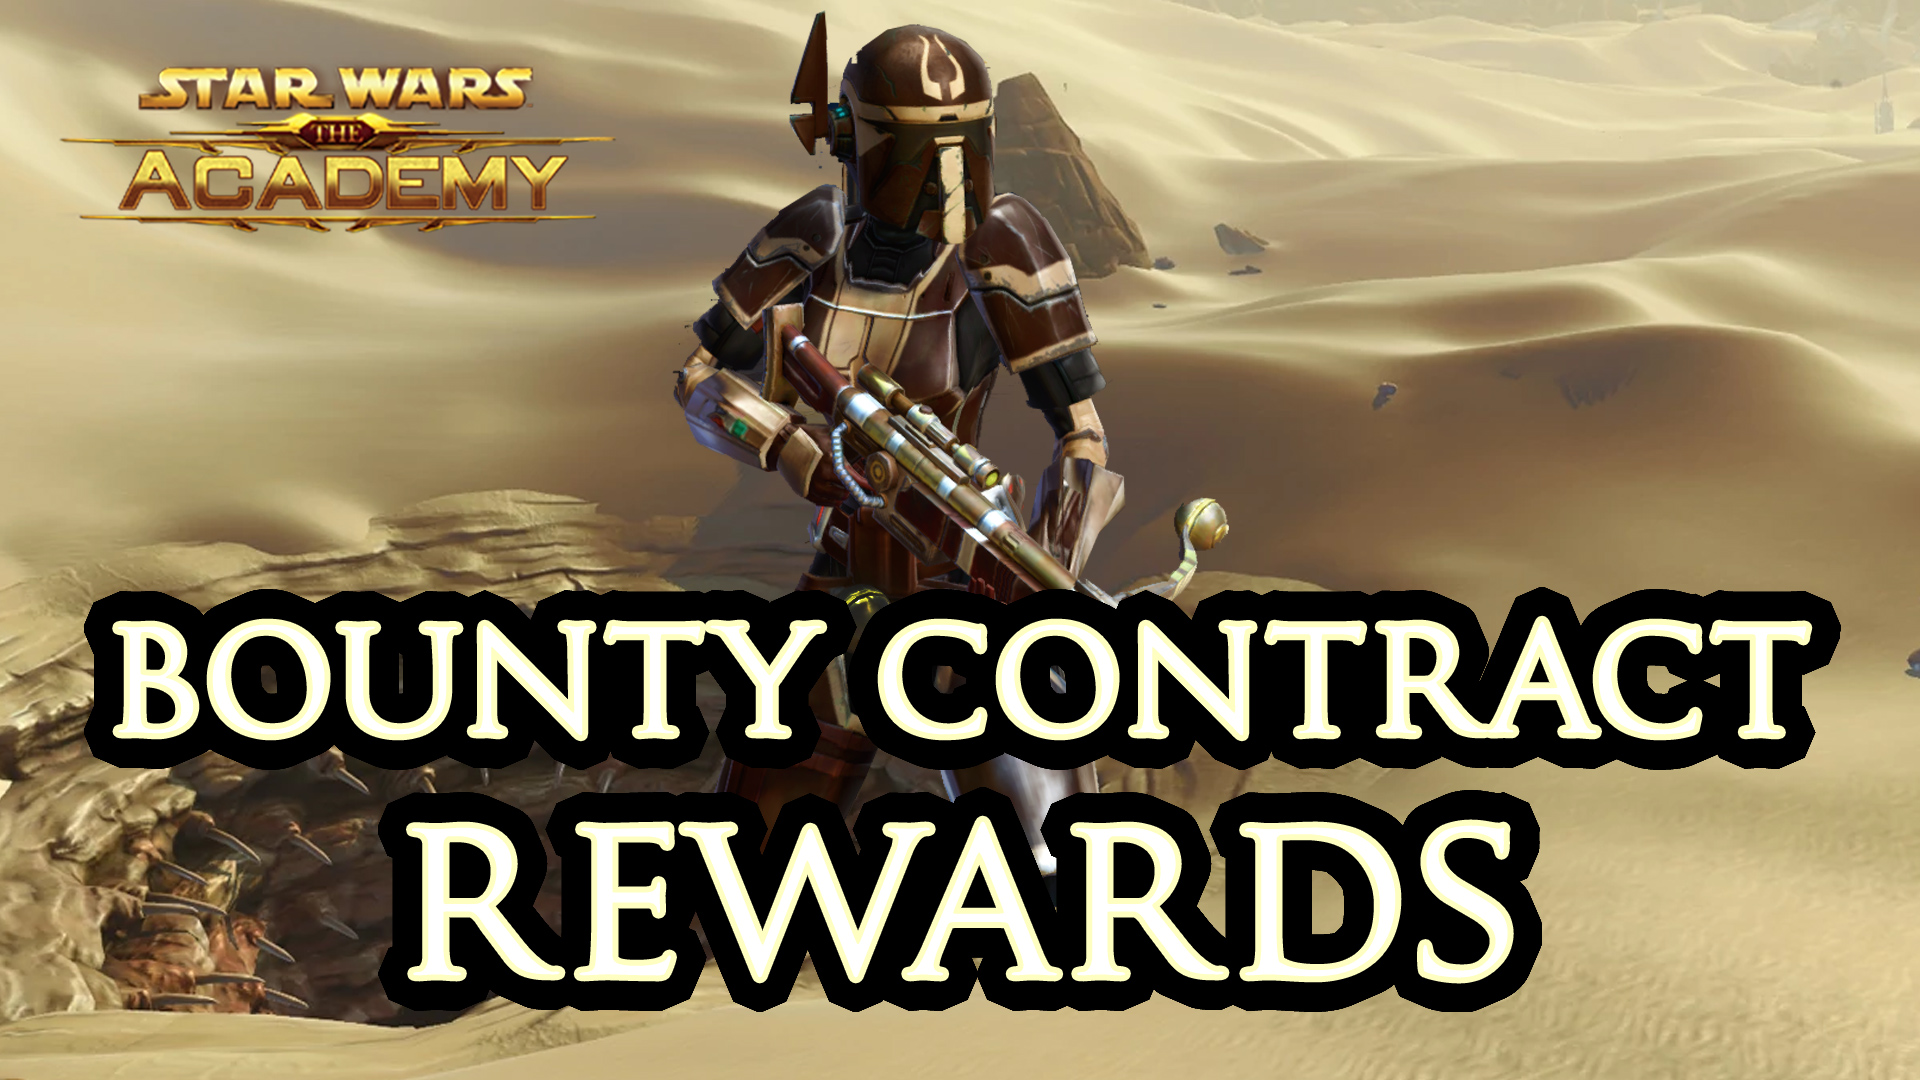 Bounty hunter event swtor guide 2016